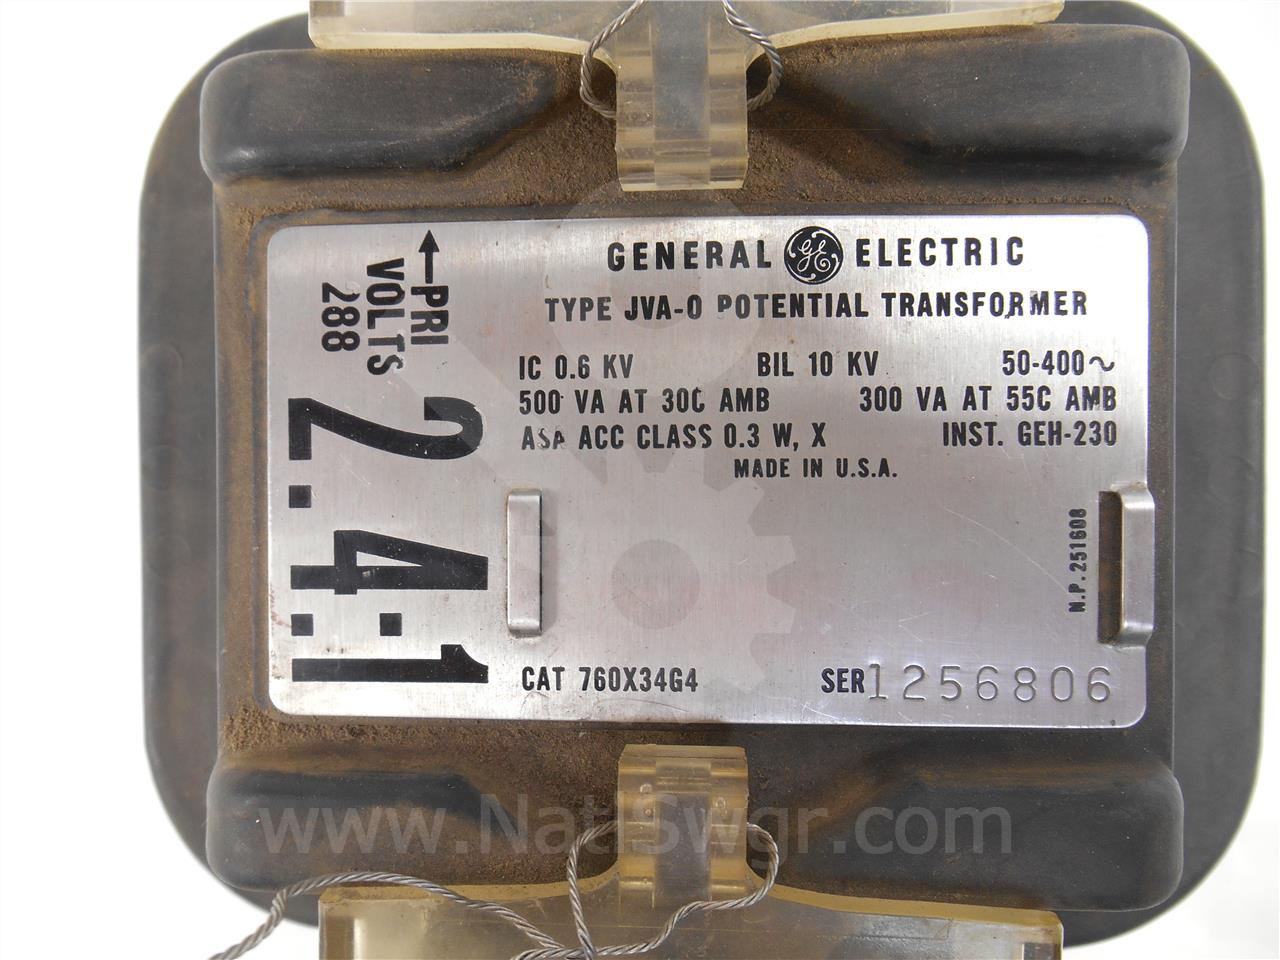 General Electric GE 2.4:1 JVA-0 POTENTIAL TRANSFORMER